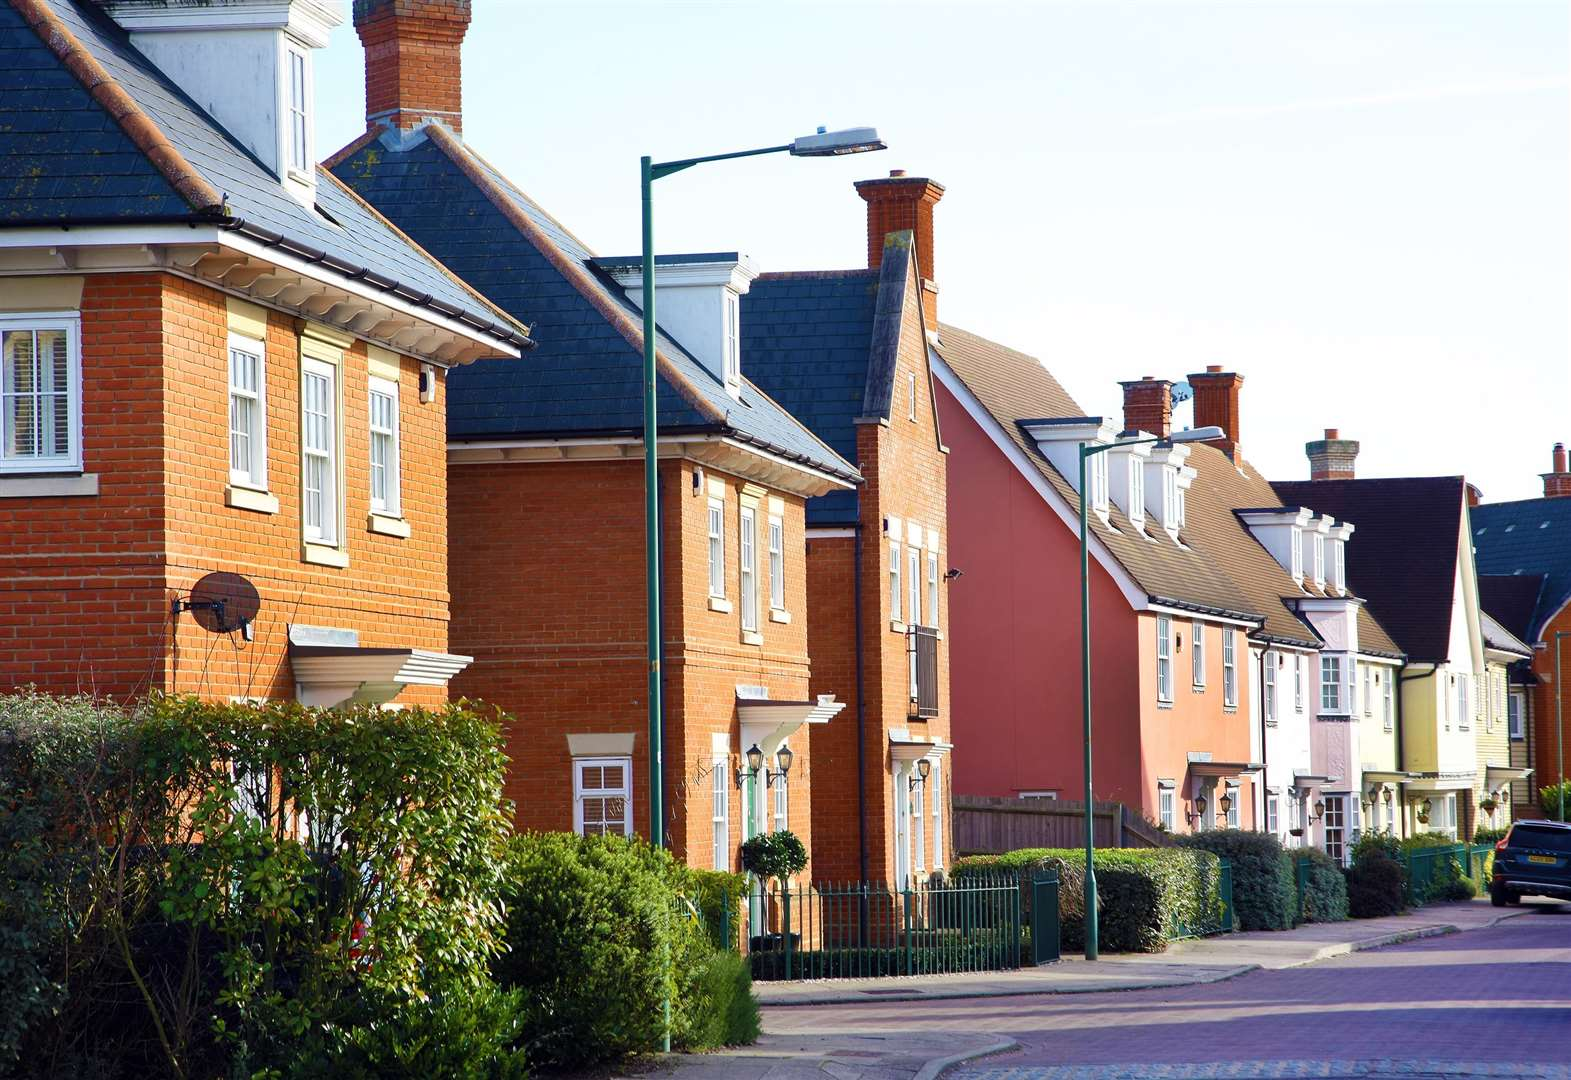 Kent leads charge in building of new homes in south east